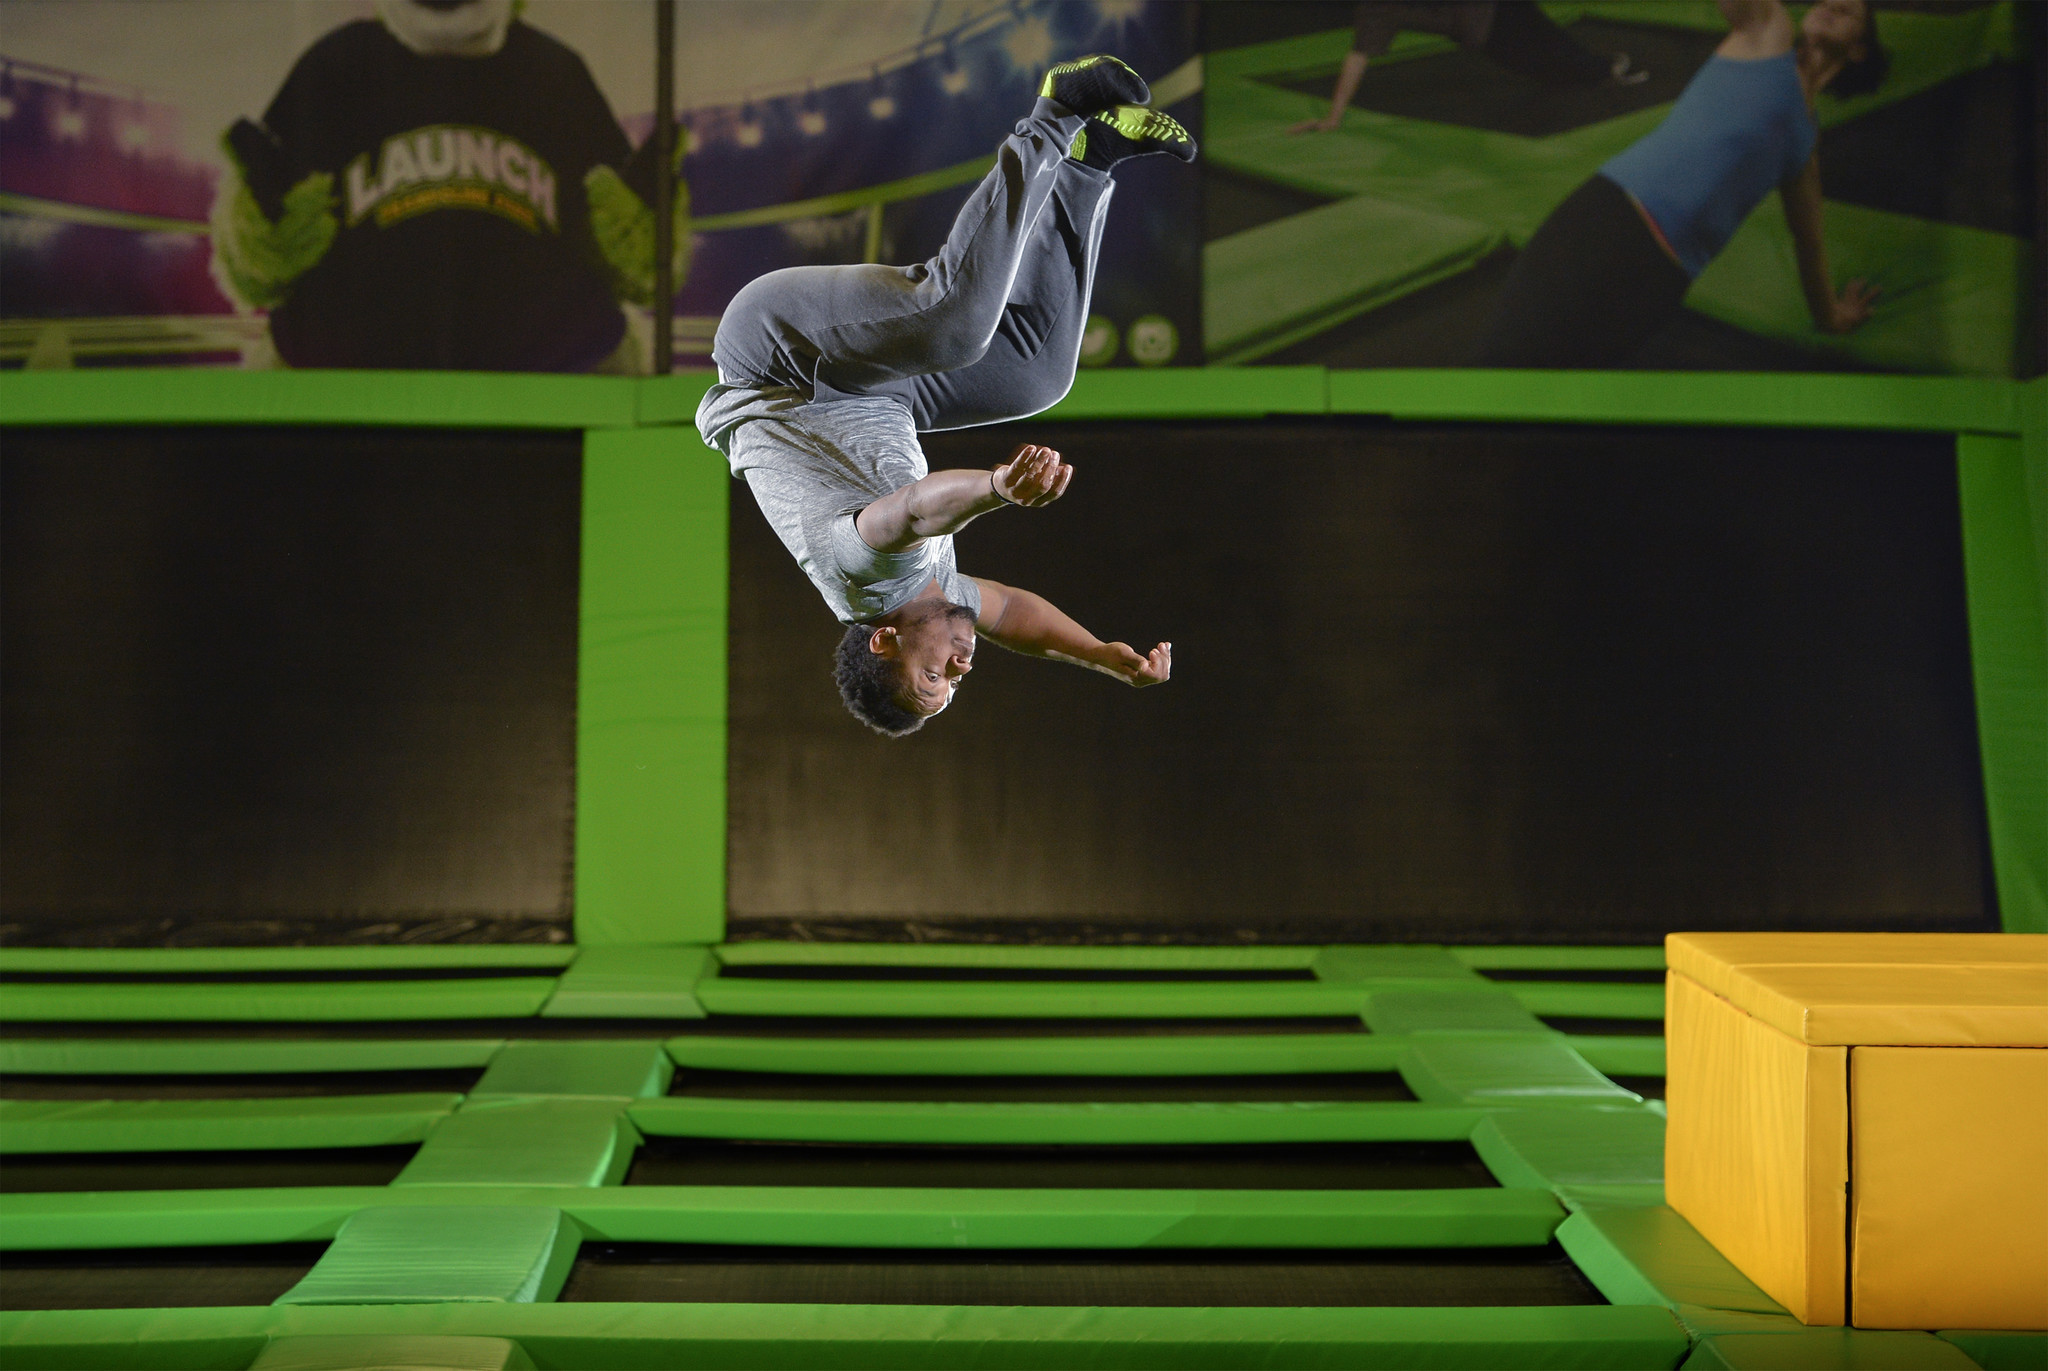 Jumping into shape at Columbia's new Launch Trampoline ...